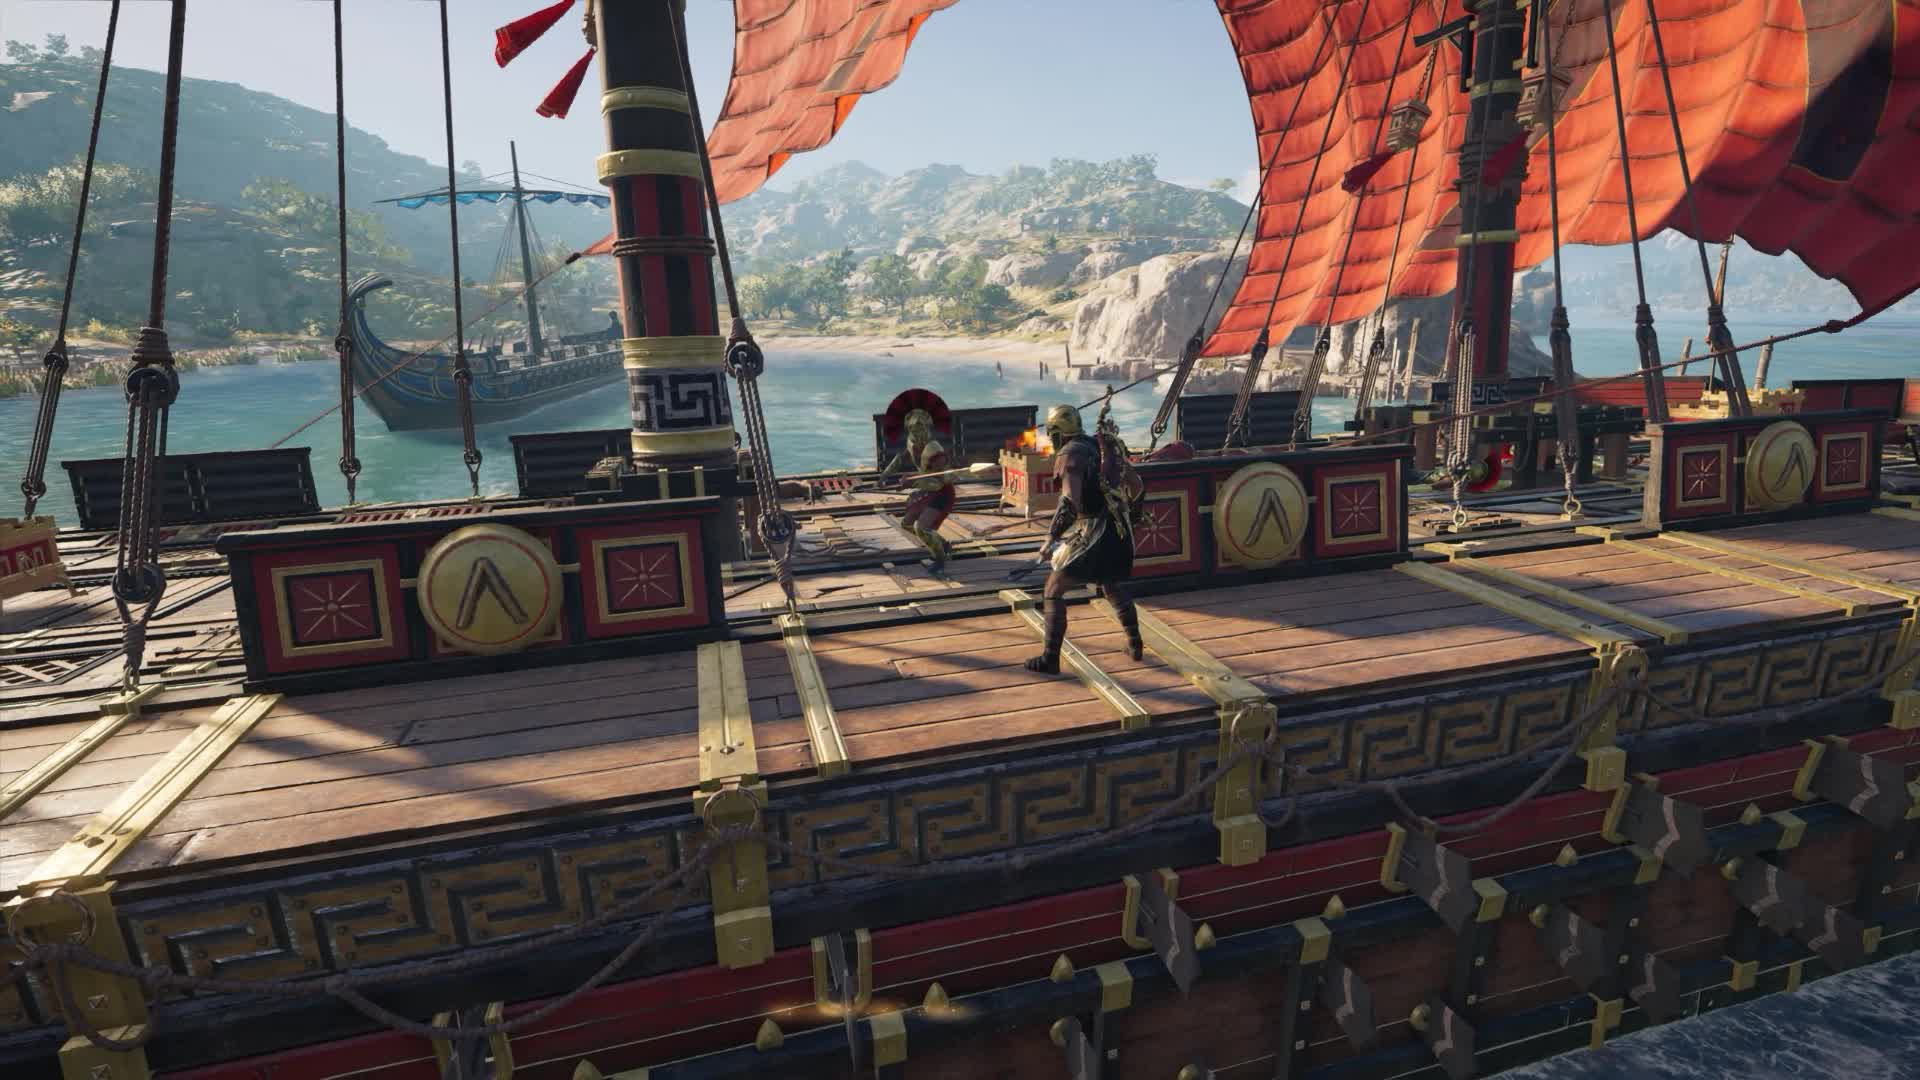 Assassin's Creed Odyssey 2018.12.21 - 00.47.08.28 1 (1) GIFs